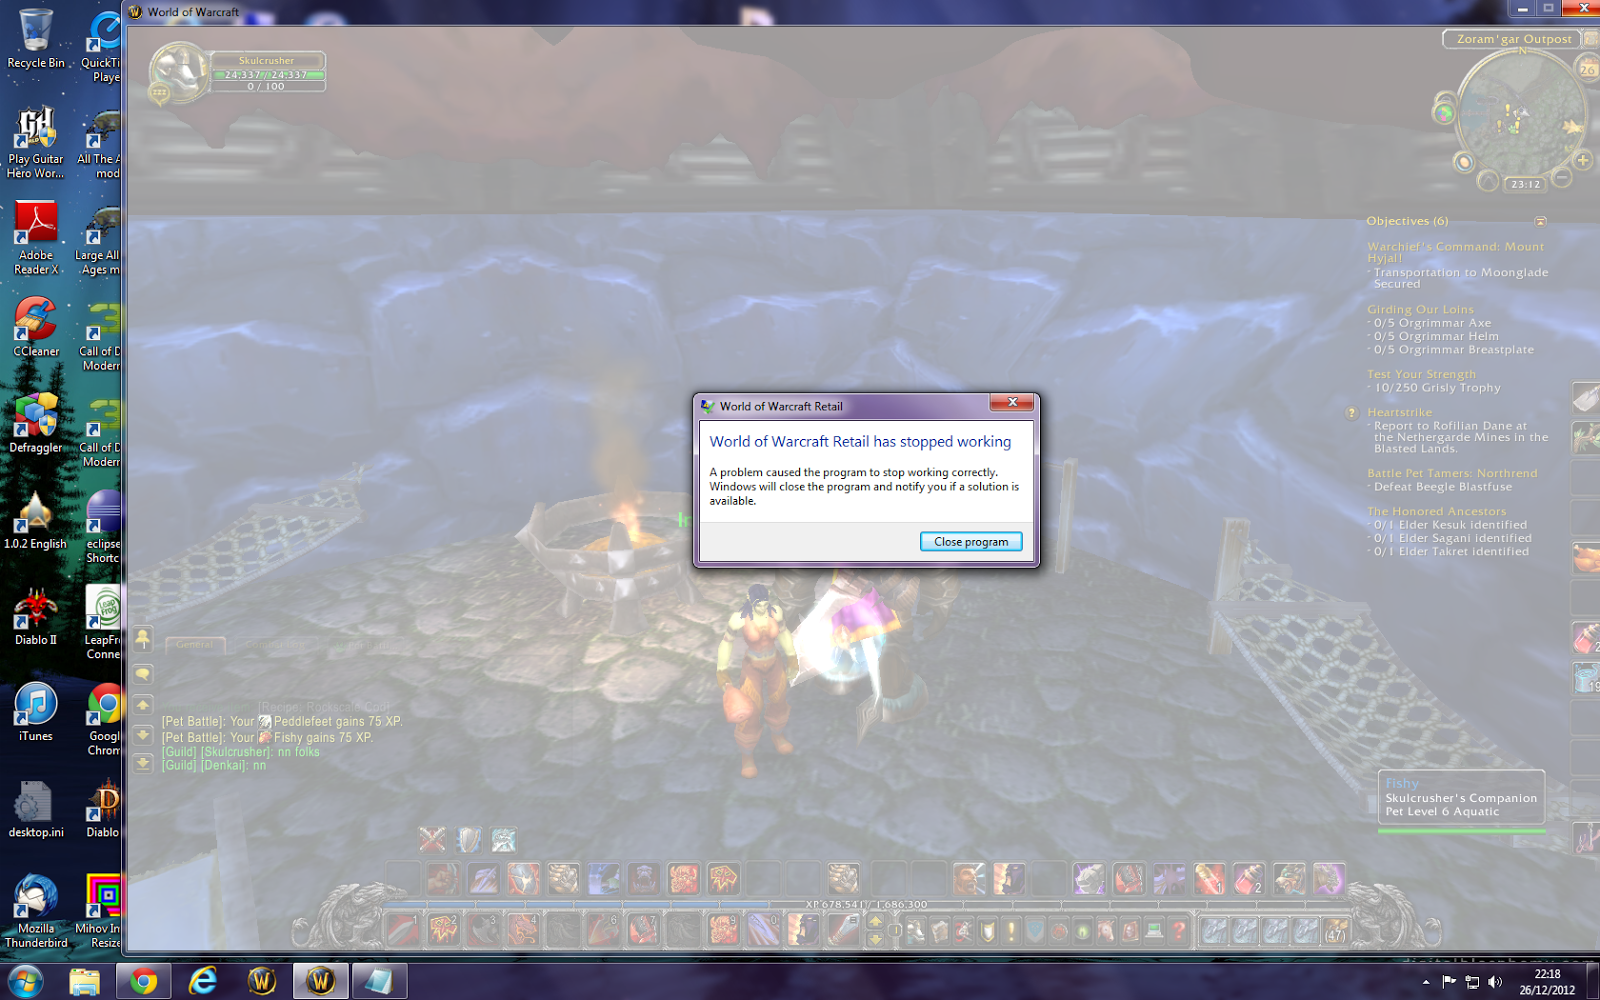 world of warcraft crashed error message